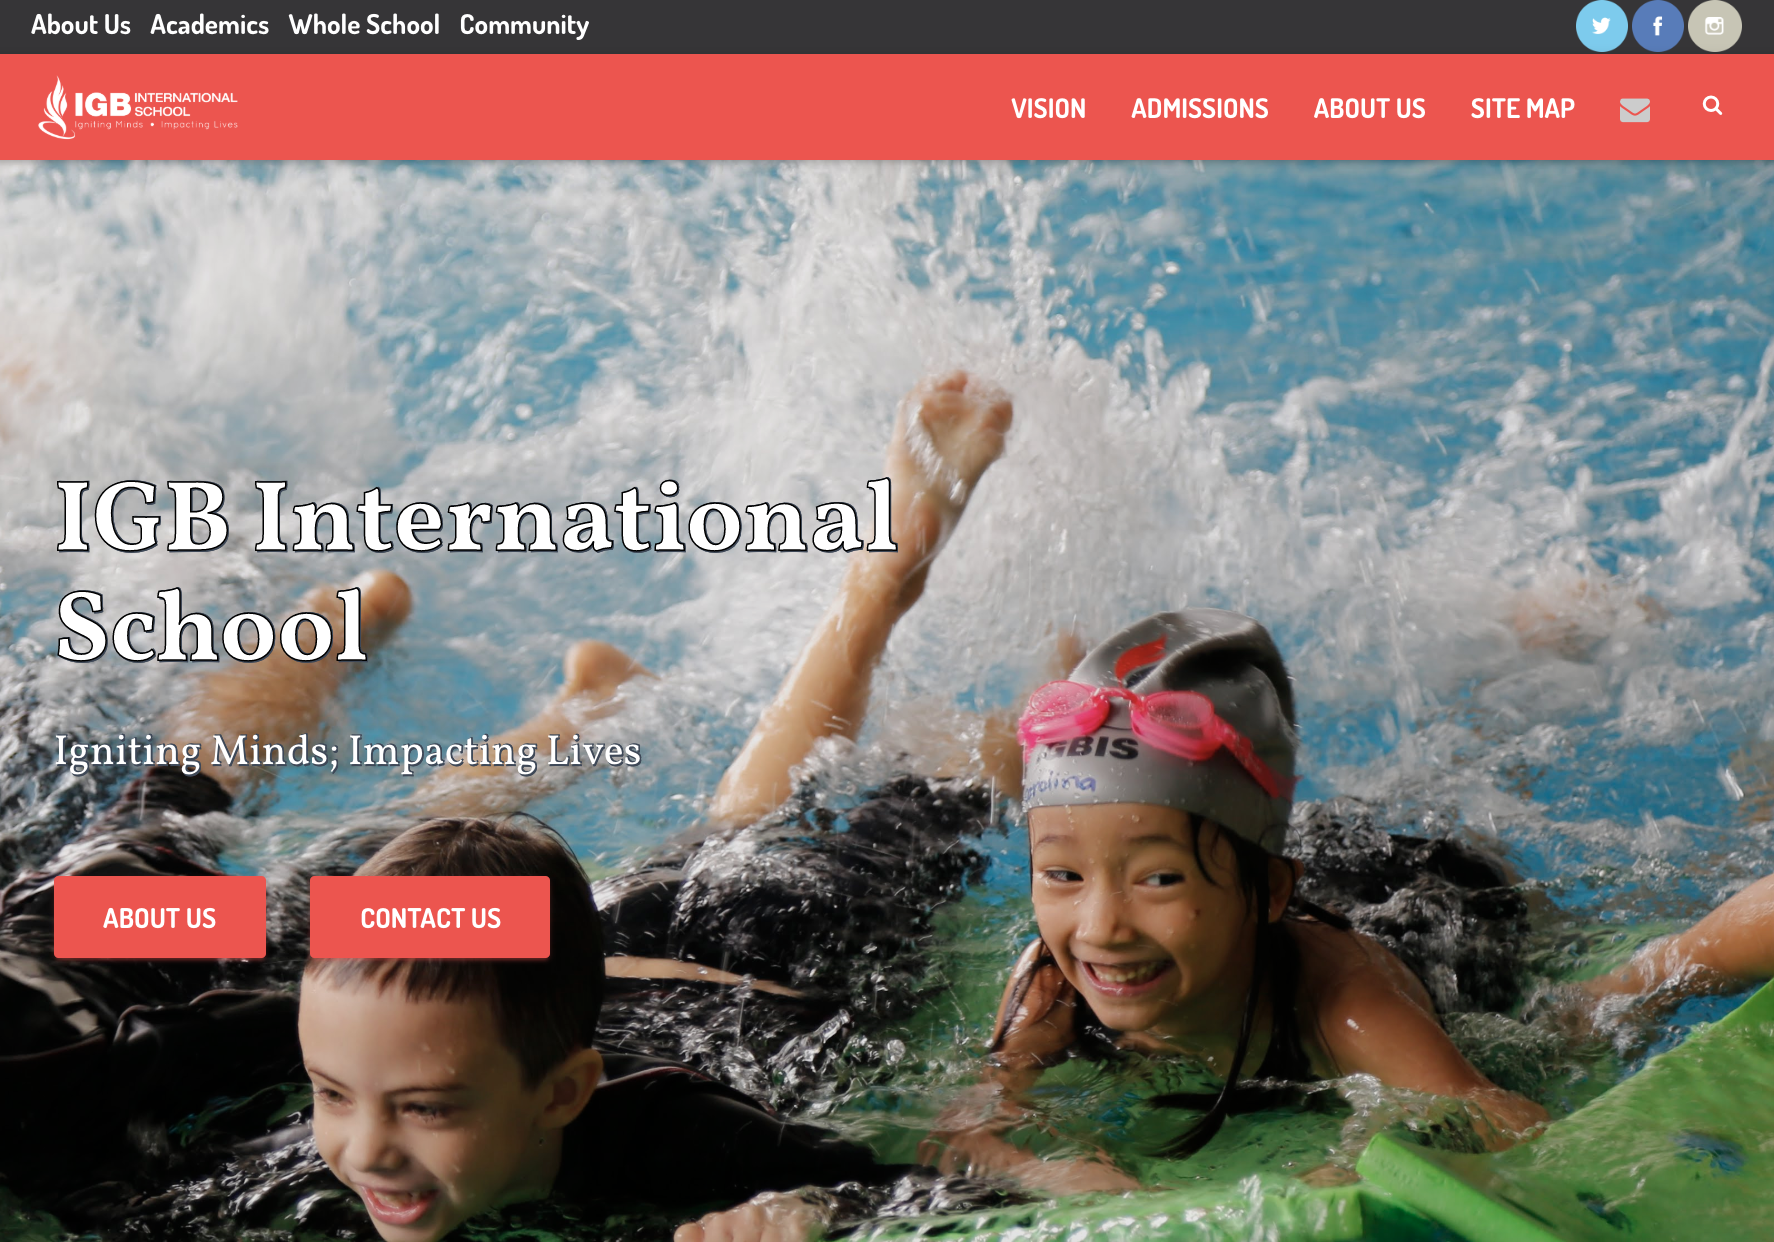 IGB International School  uses WordPress for marketing and community building.